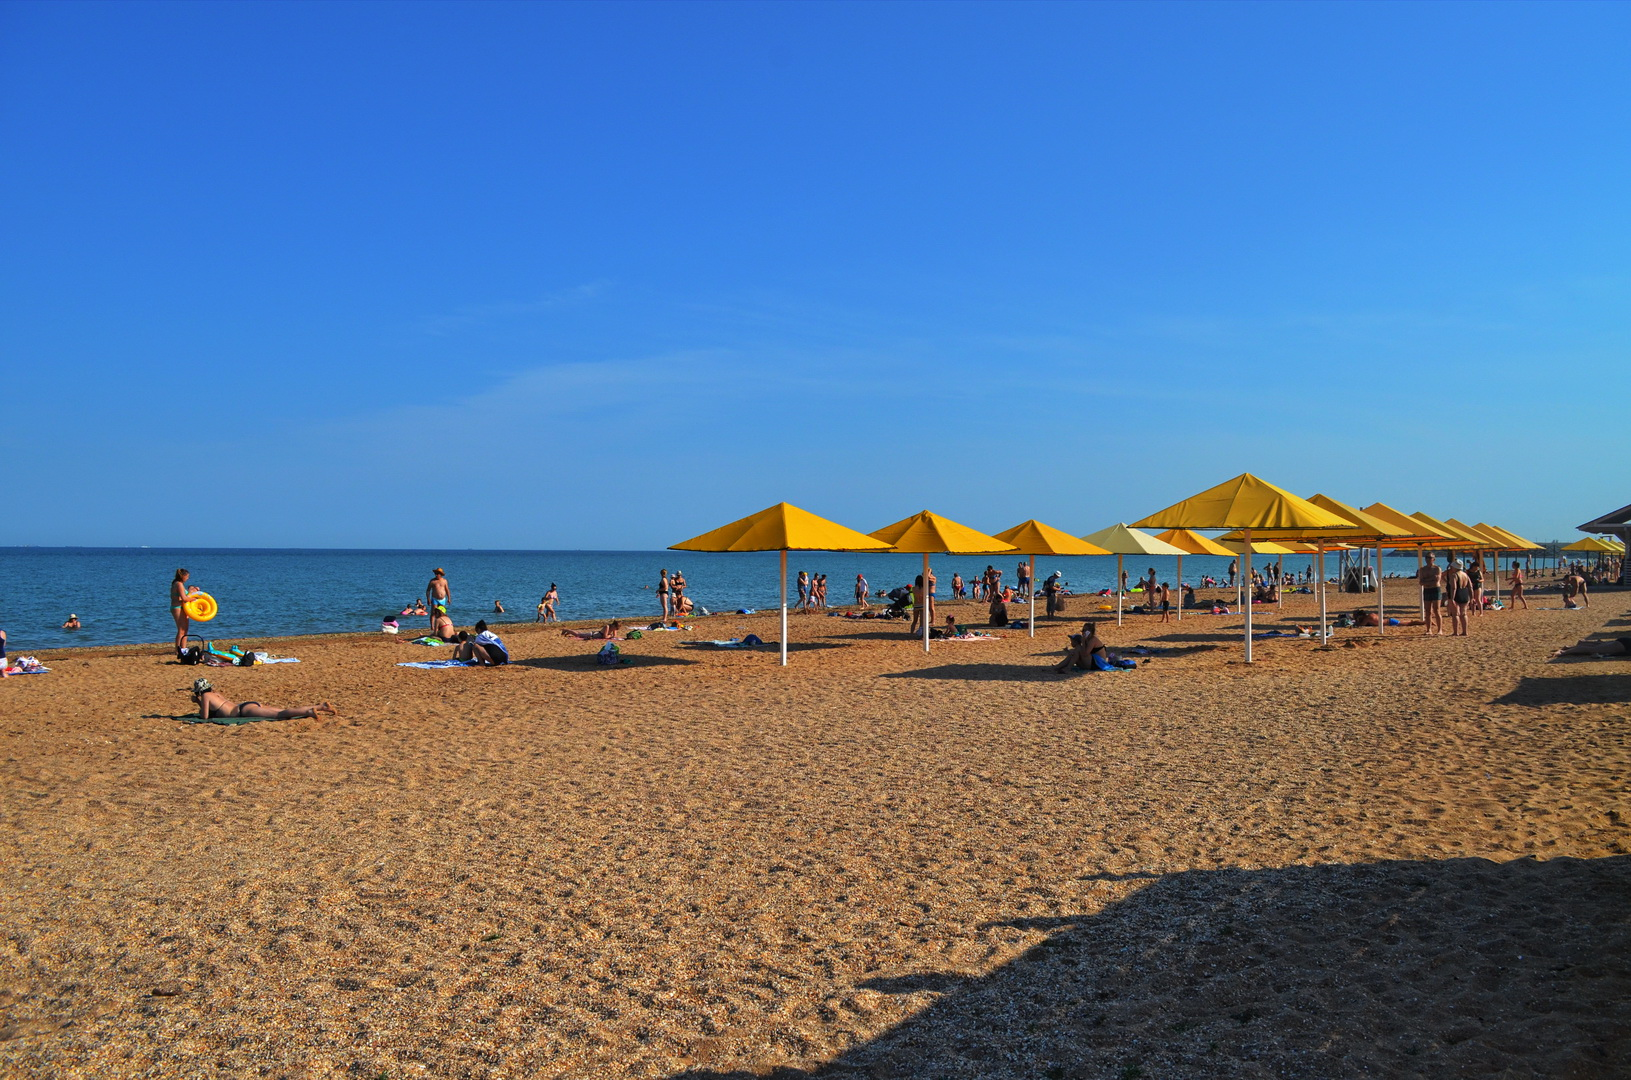 kerch city beach 20